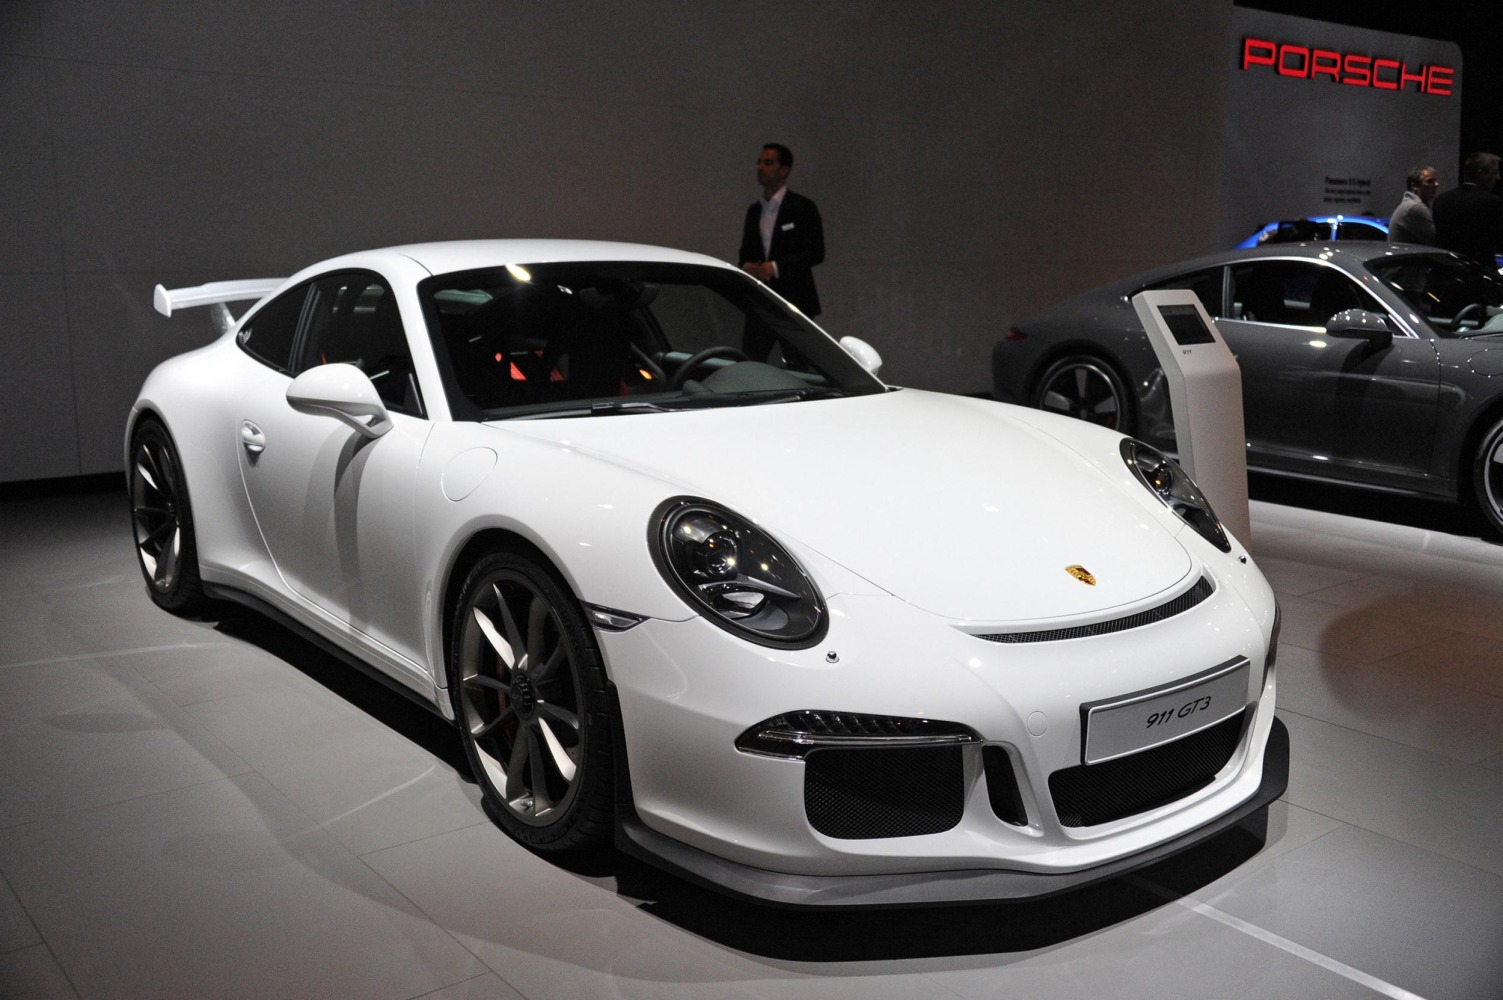 Porsche Warns Luxury Gt3 Sports Car Might Catch Fire Nbc